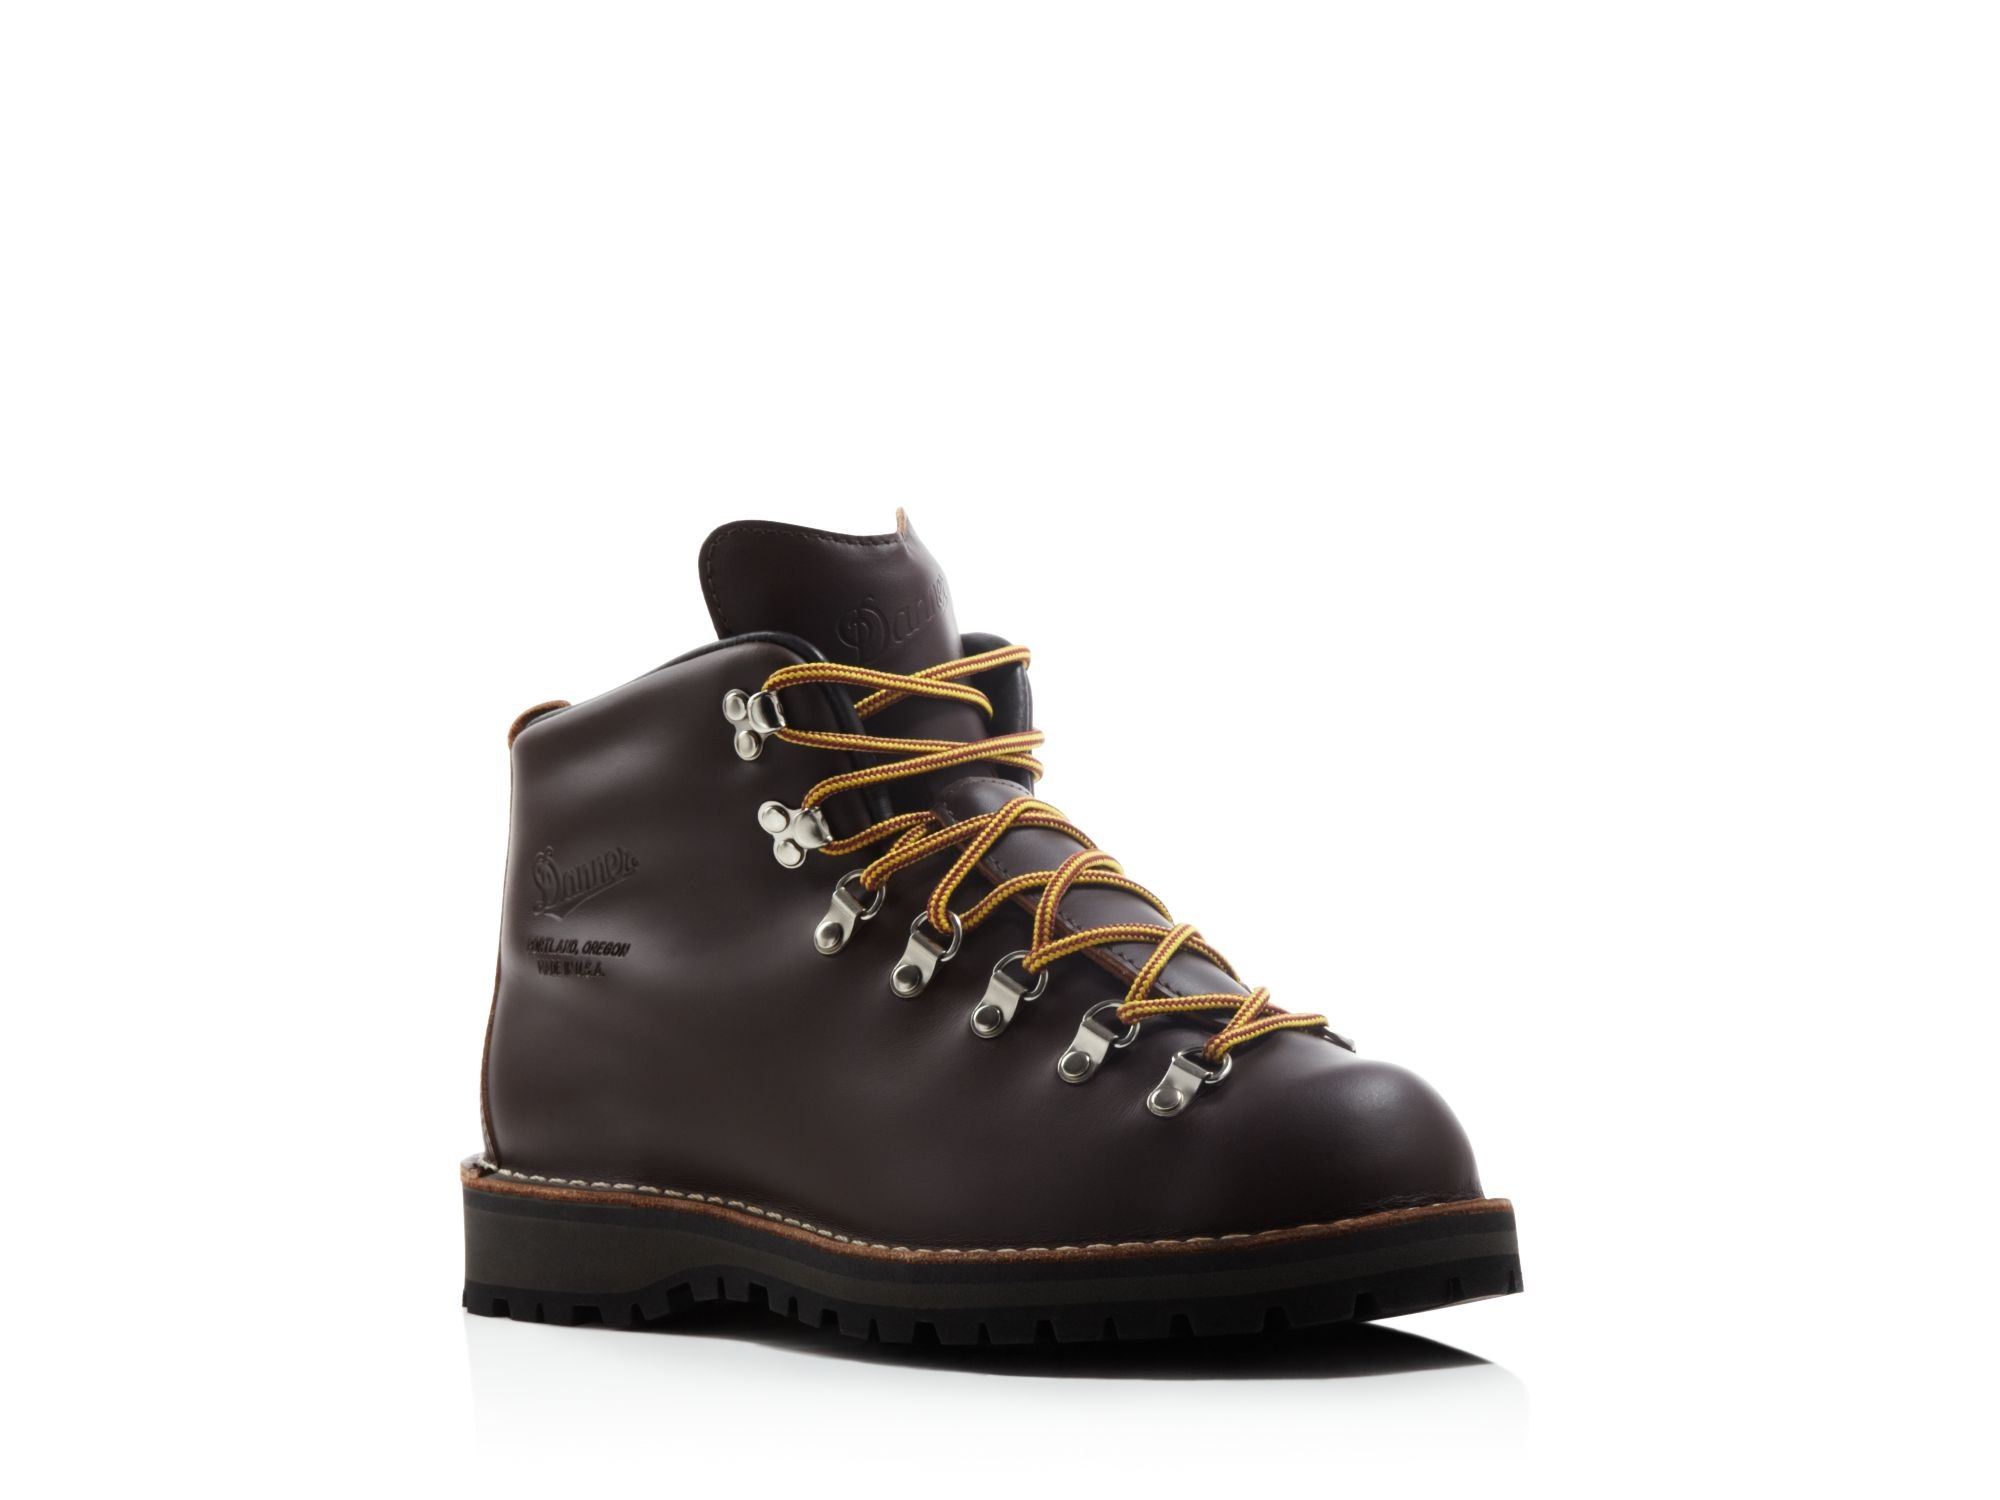 Danner Mountain Light Boots In Brown For Men Lyst